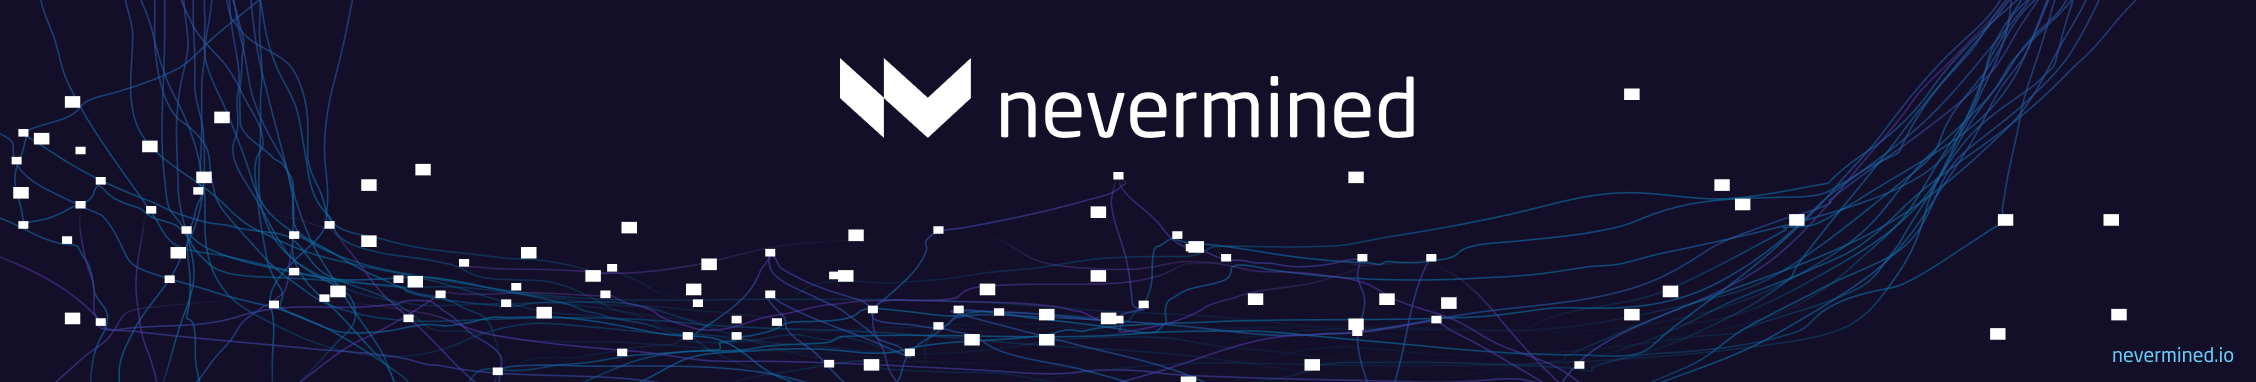 Nevermined Smart Contracts - 永不终止的智能合约